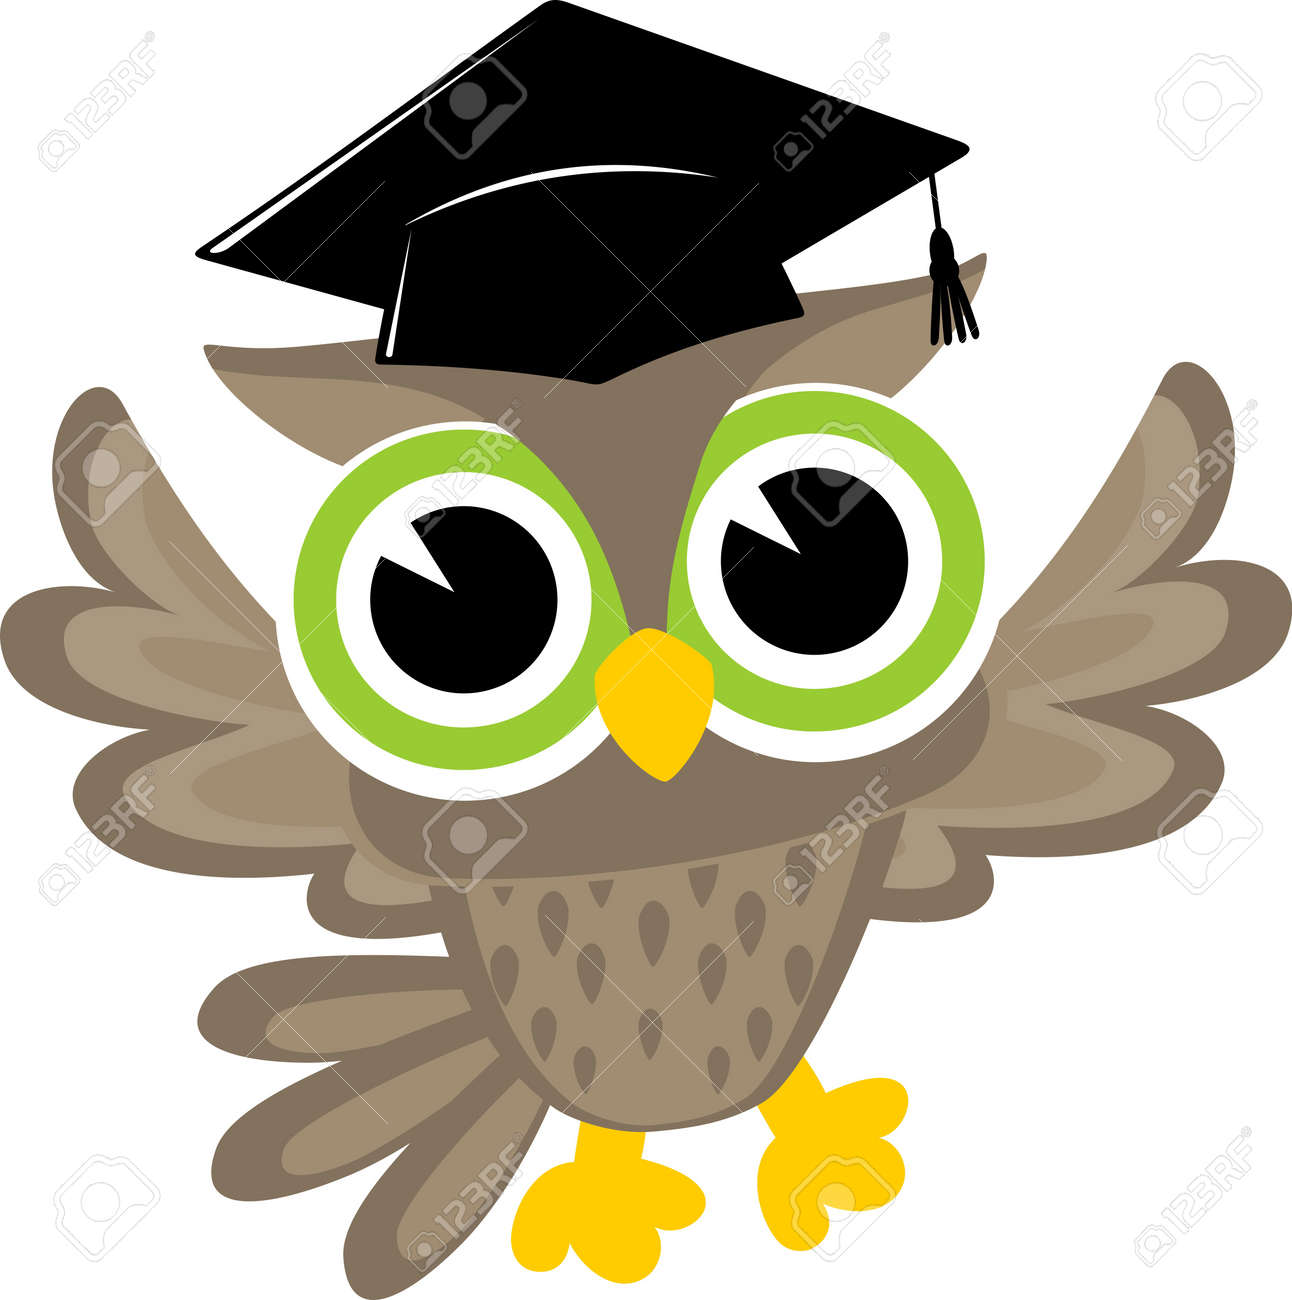 cartoon owl stock photos royalty free cartoon owl images and pictures